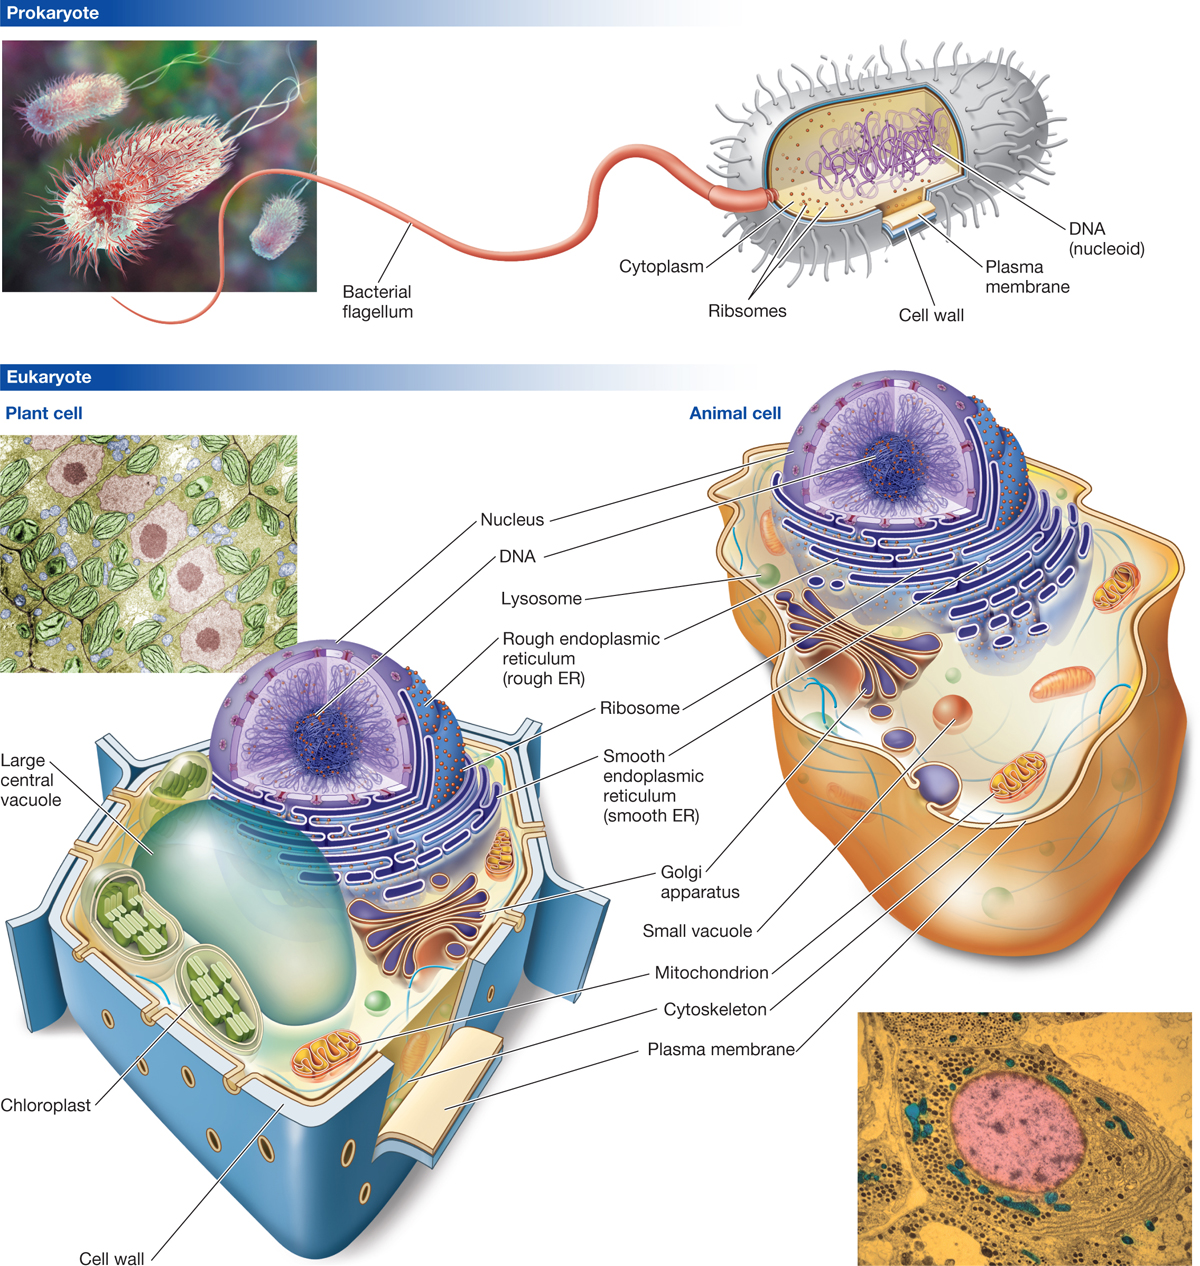 cell structures prokaryotic eukaryotic cells essay You, my friend, are made up of cells lots and lots of them some of them are eukaryotic (human), but many more of them are prokaryotic, thanks to the friendly bacteria of your gut, skin, and other body systems jump in to learn more about prokaryotic and eukaryotic cells and the complex and beautiful structures inside of them.